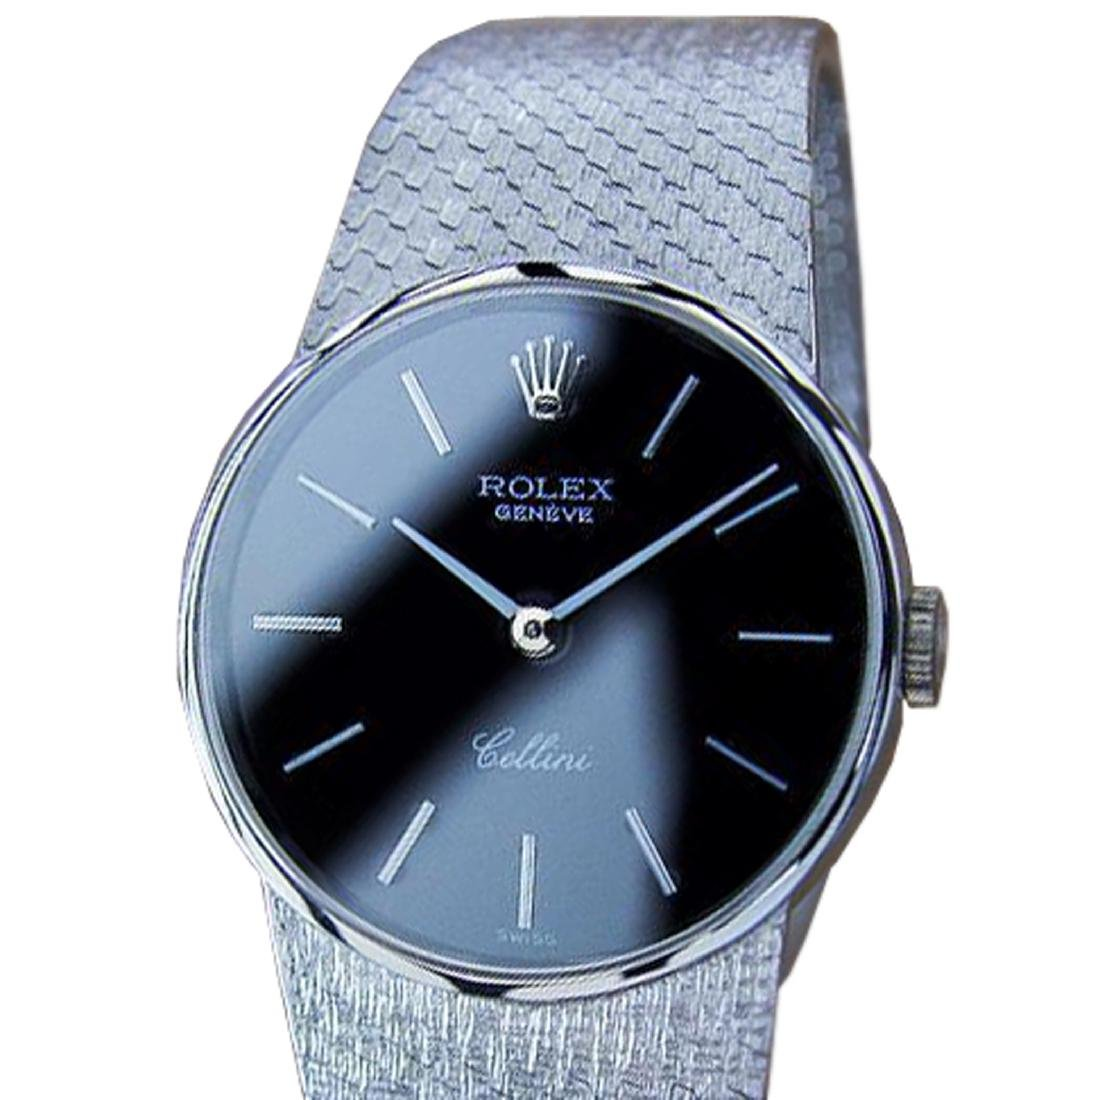 *Rolex Cellini Ladies Swiss Made 1973 18k Solid Gold